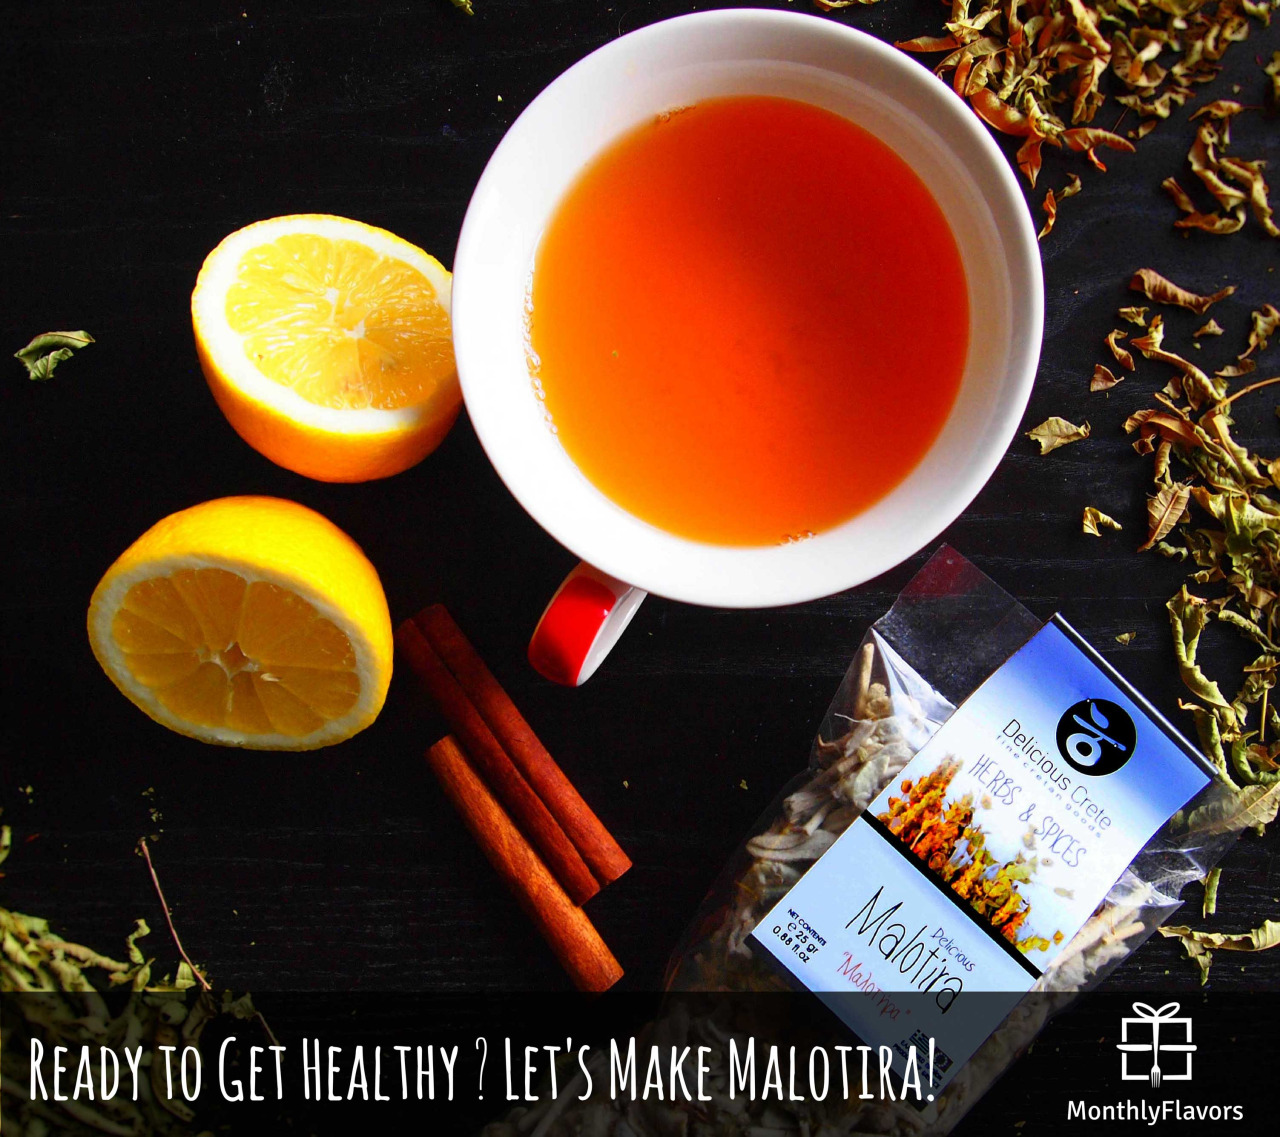 Ready to Get Healthy? Let's Make Malotira!